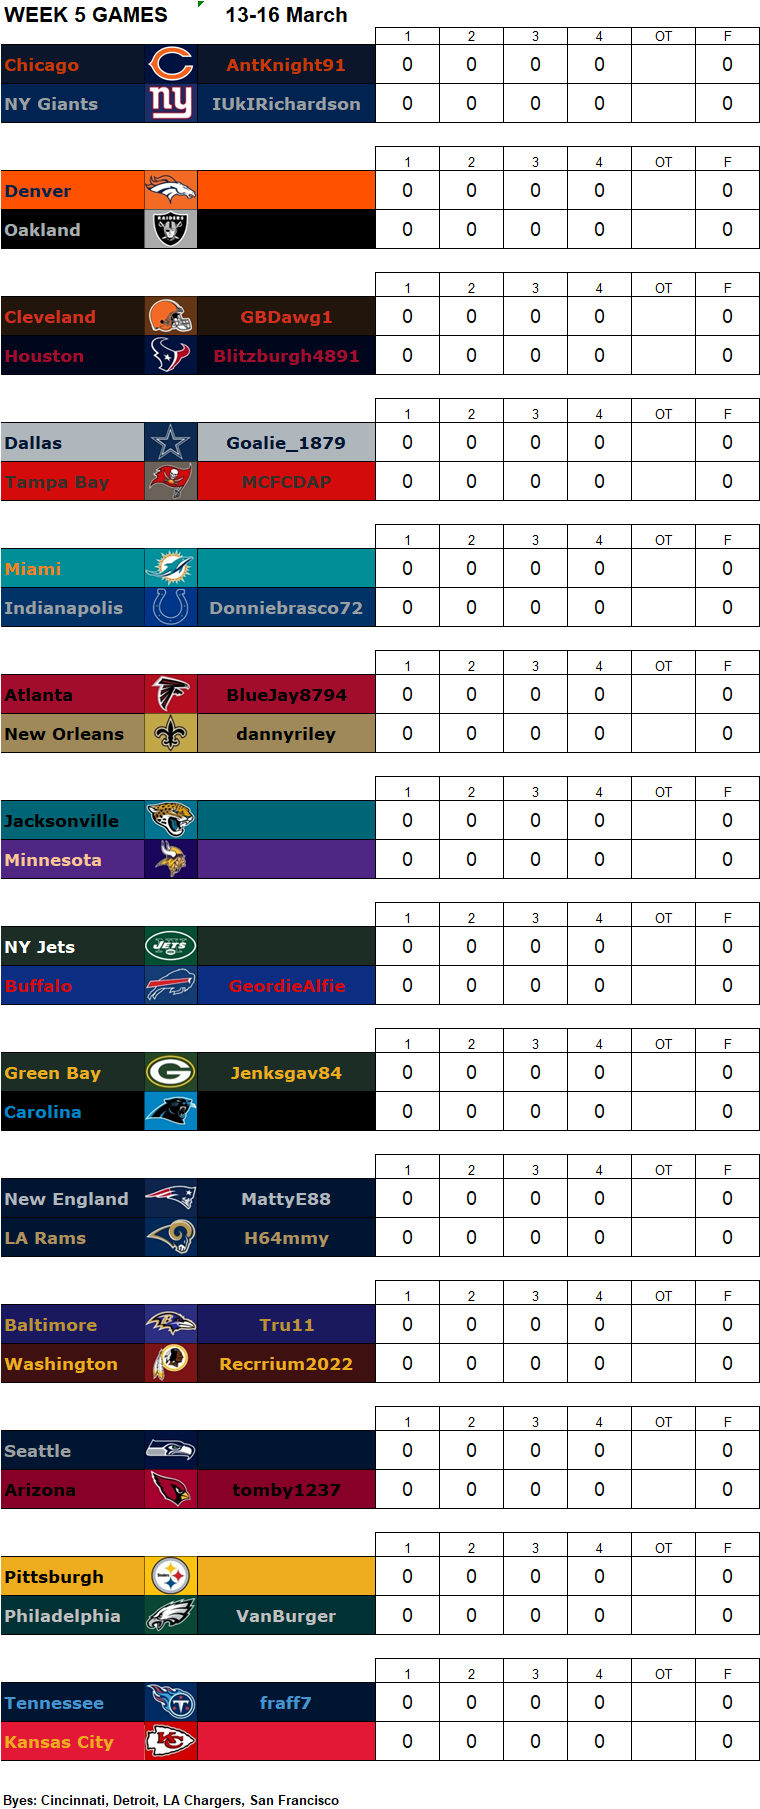 Week 5 Matchups, 13-16 March **Amended** W5g15